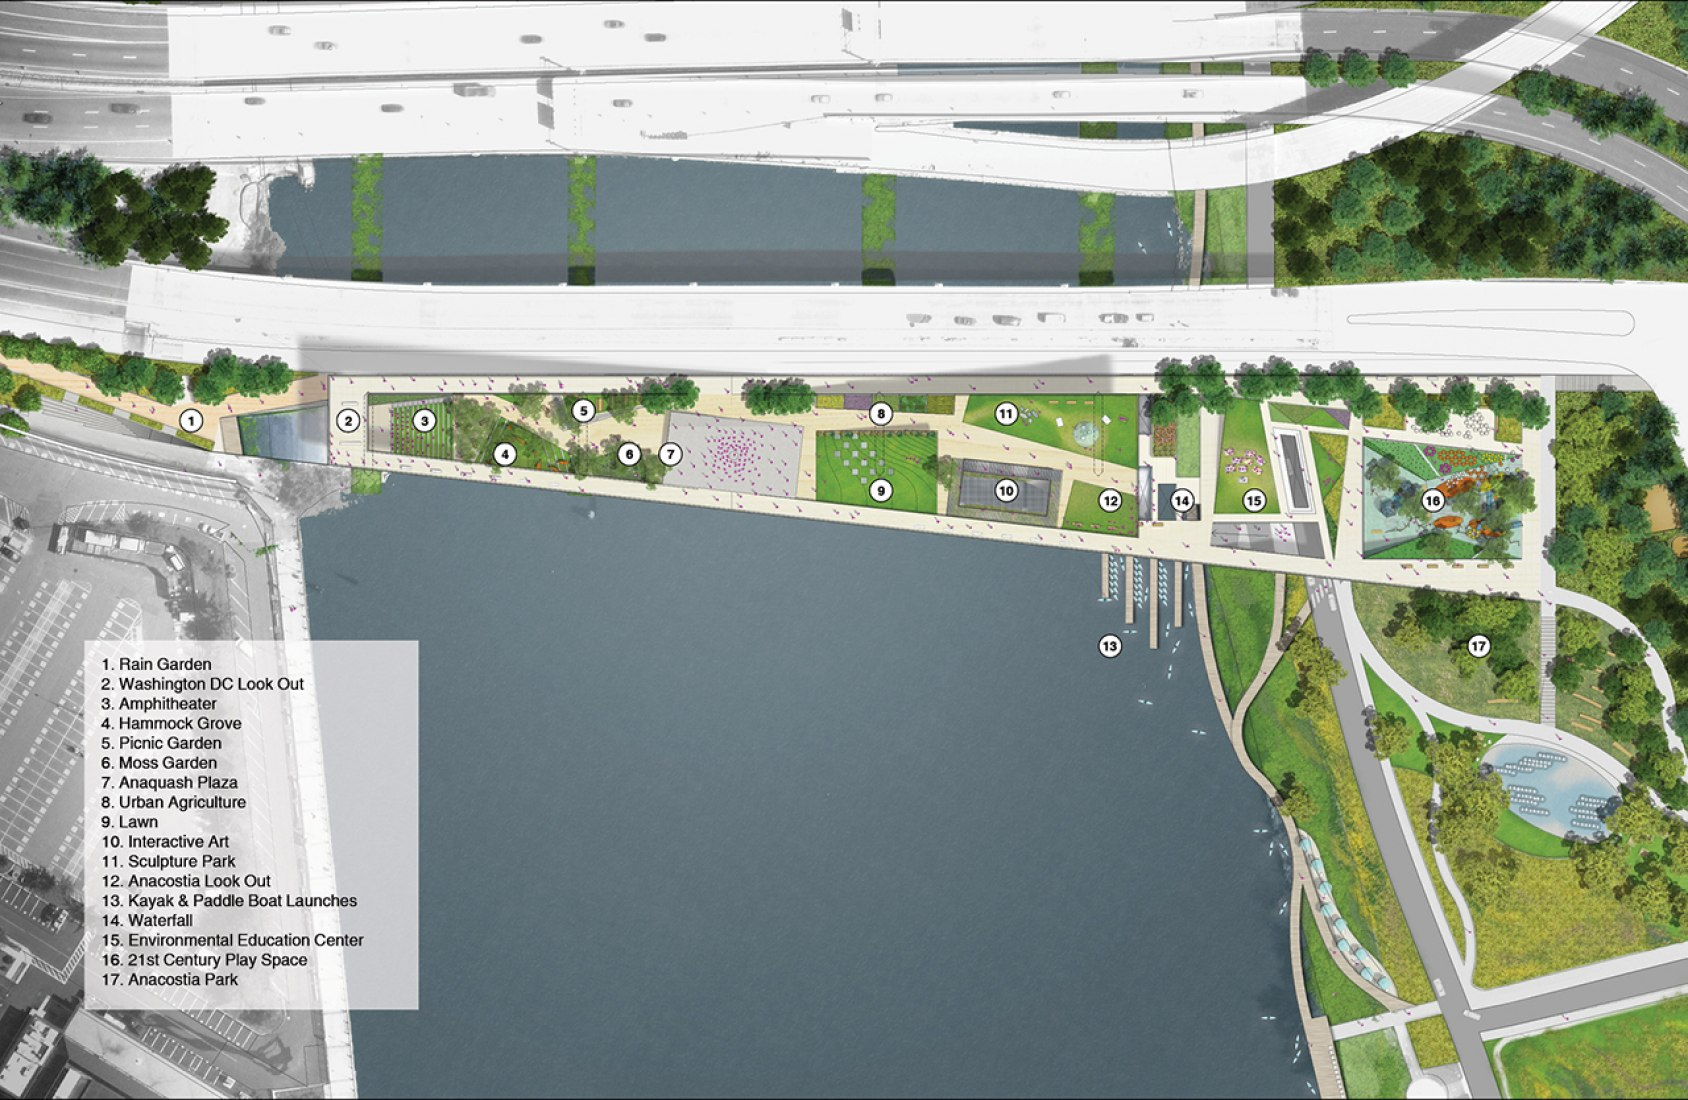 Design Selected for the 11th Street Bridge Park. Image © OMA + OLIN. Courtesy of 11th Street Bridge Park.